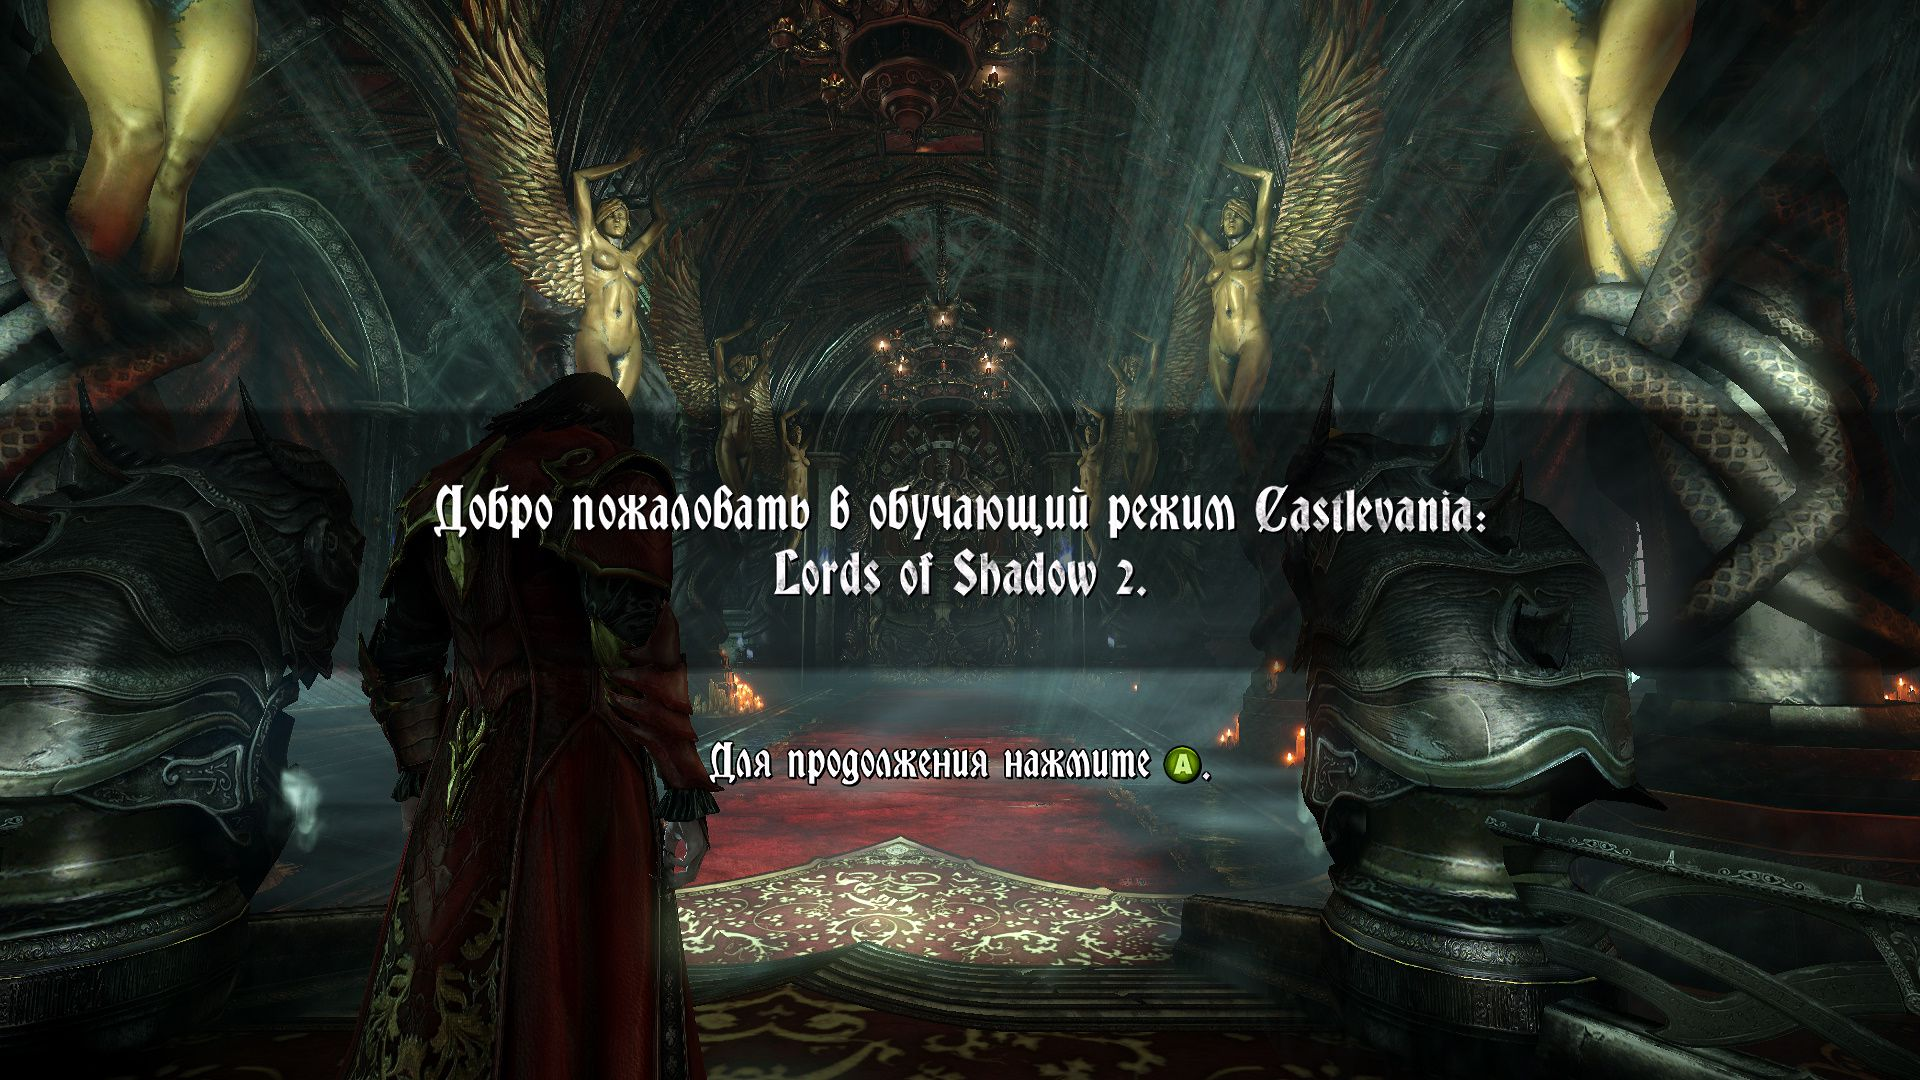 Castellastva lord of shadow 2 торрент механики prakard.